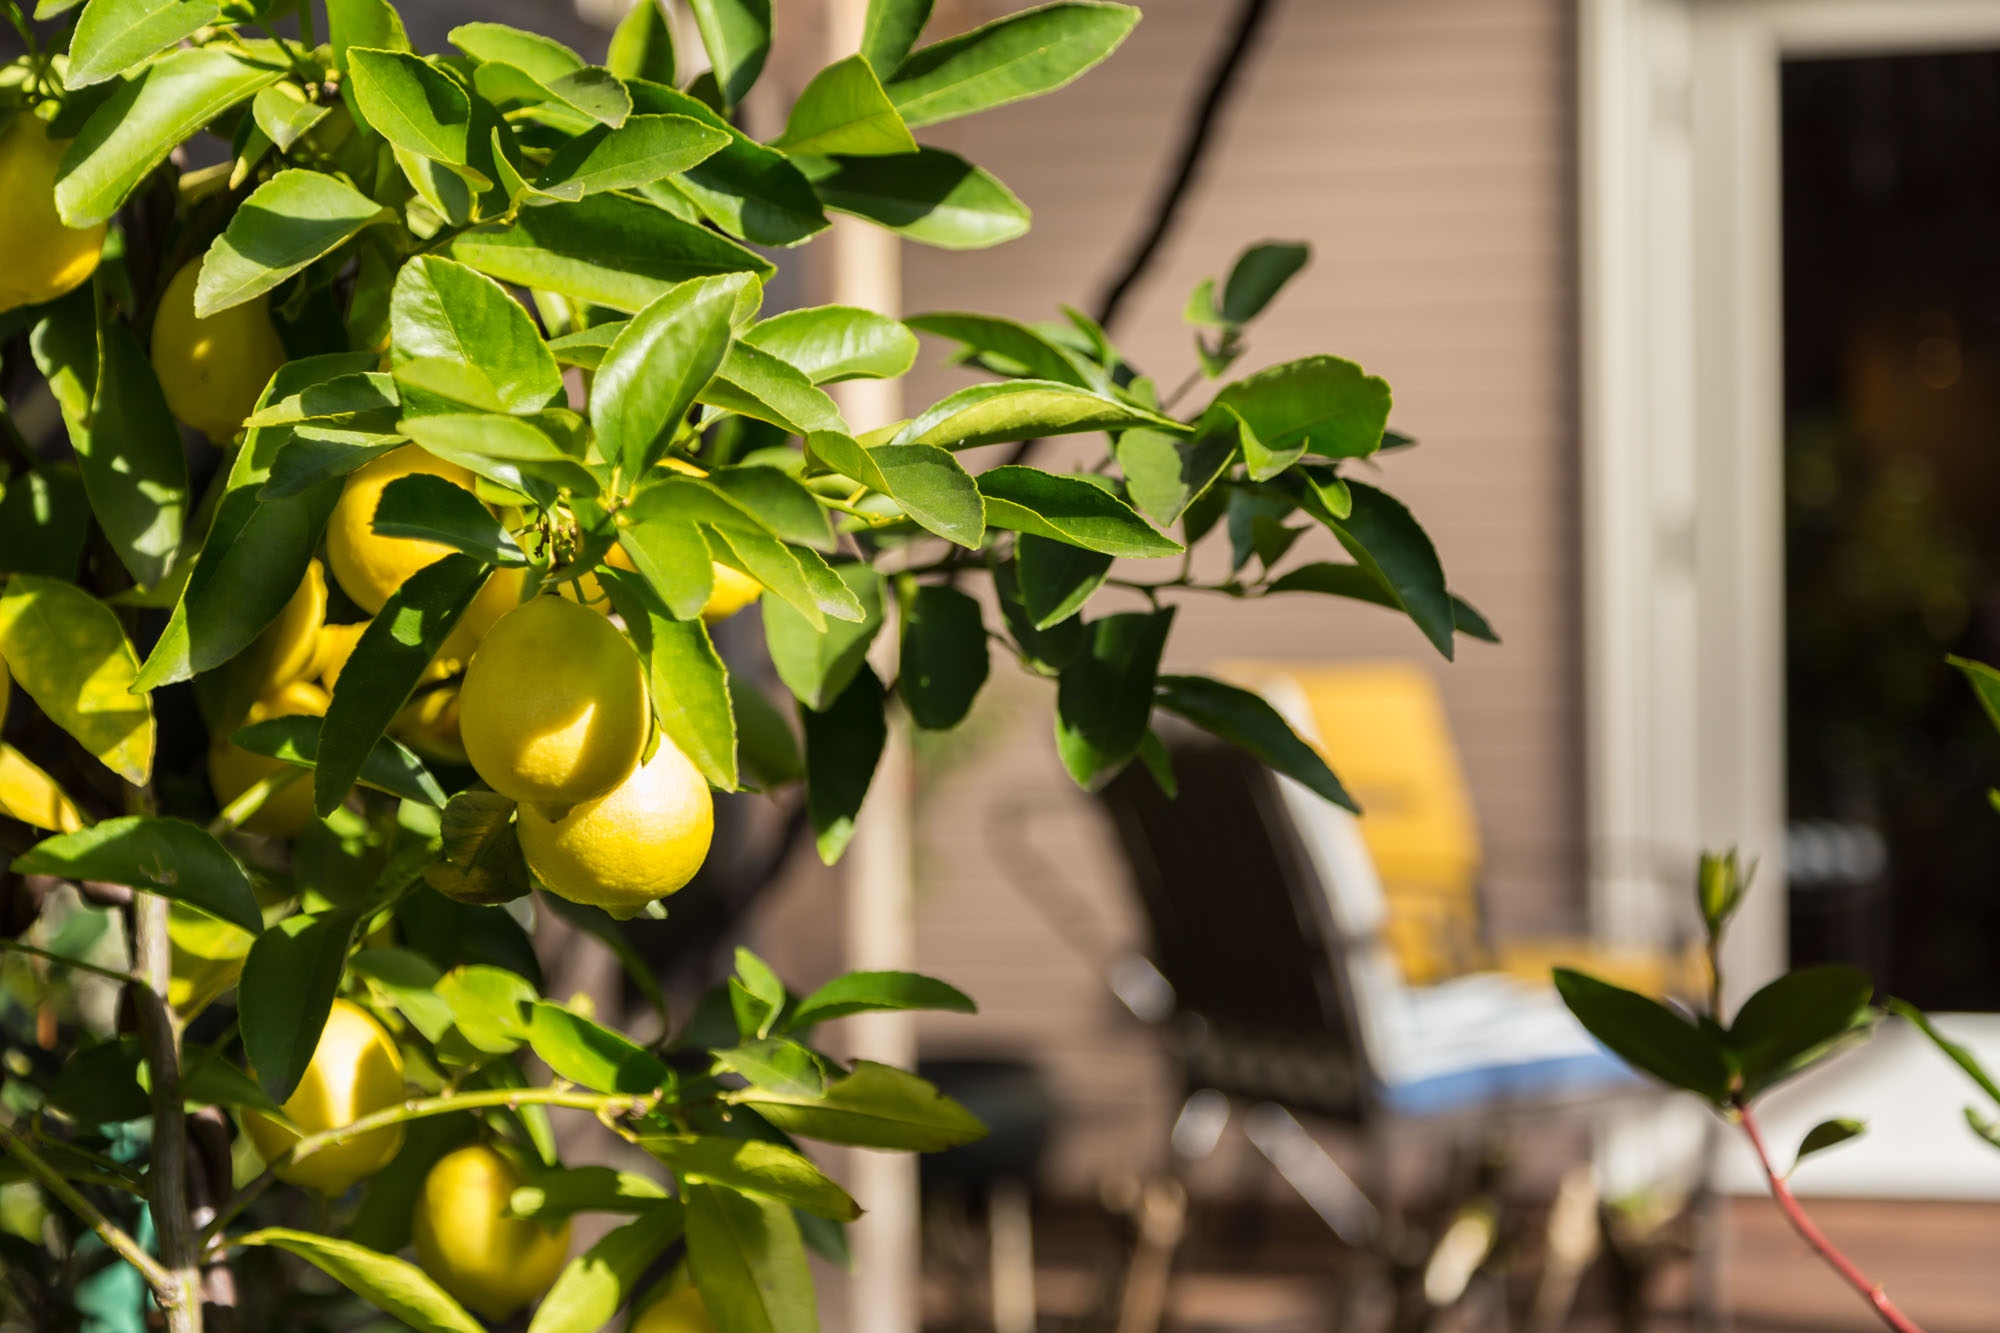 Pick your own lemons from the tree